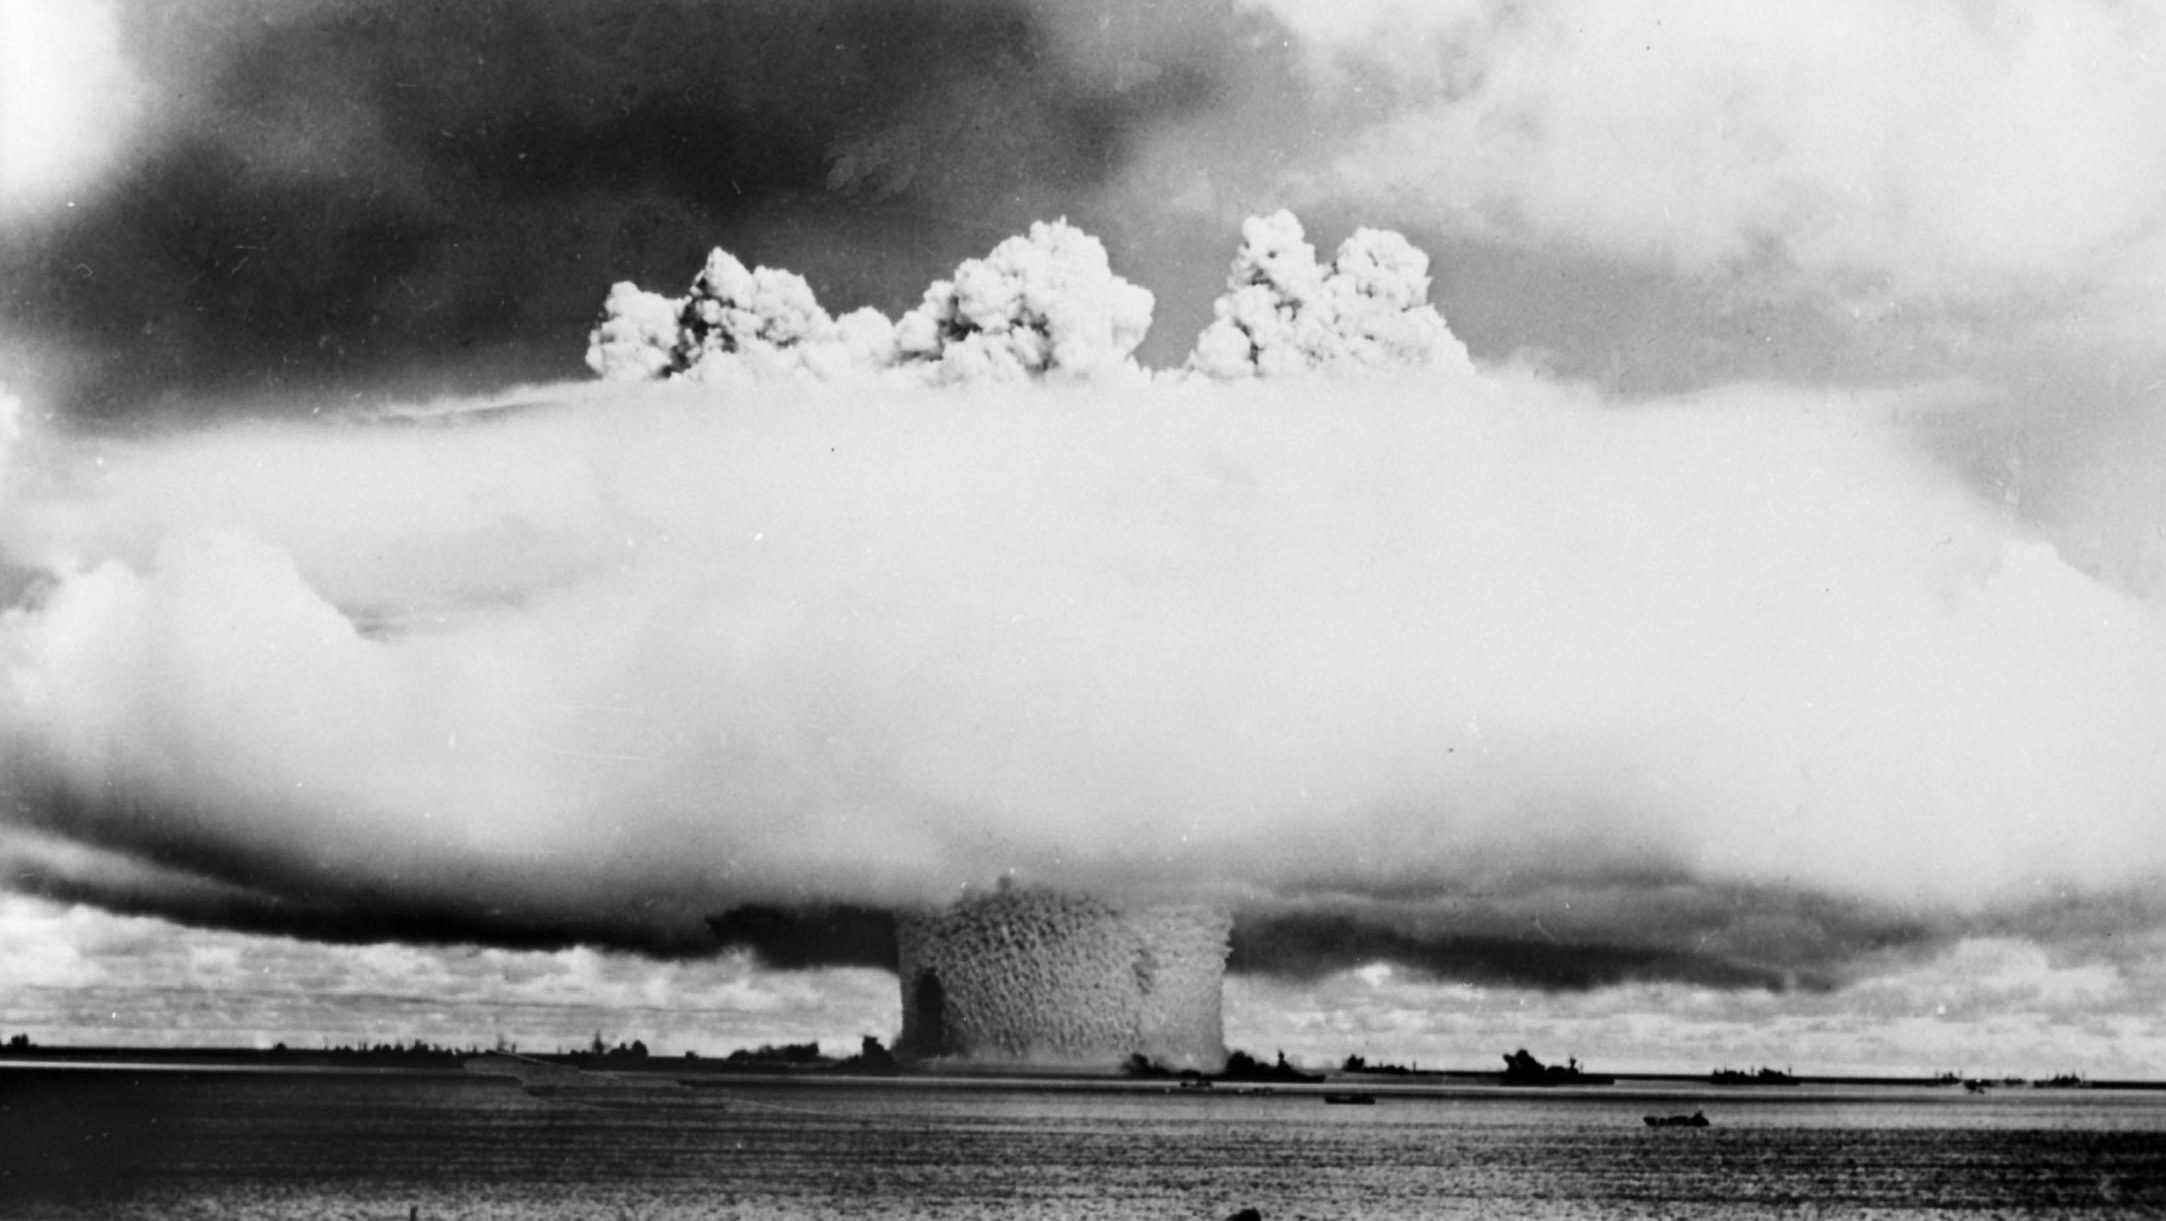 Phase 3 of the Atom Bomb explosion in the Lagoon of Bikini Island. Getty.